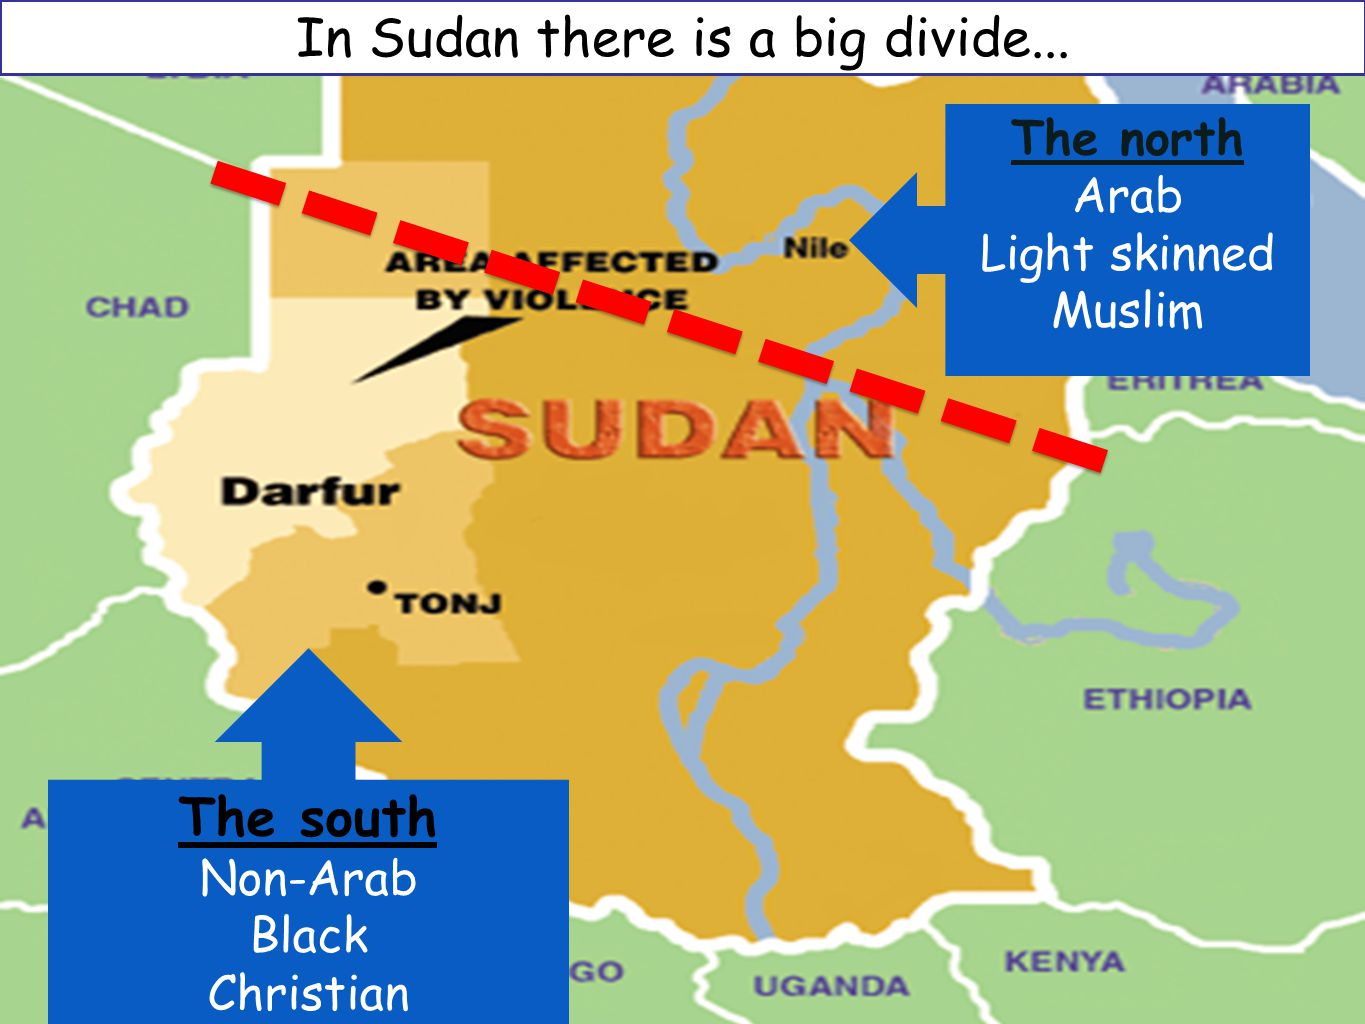 In Sudan there is a big divide...